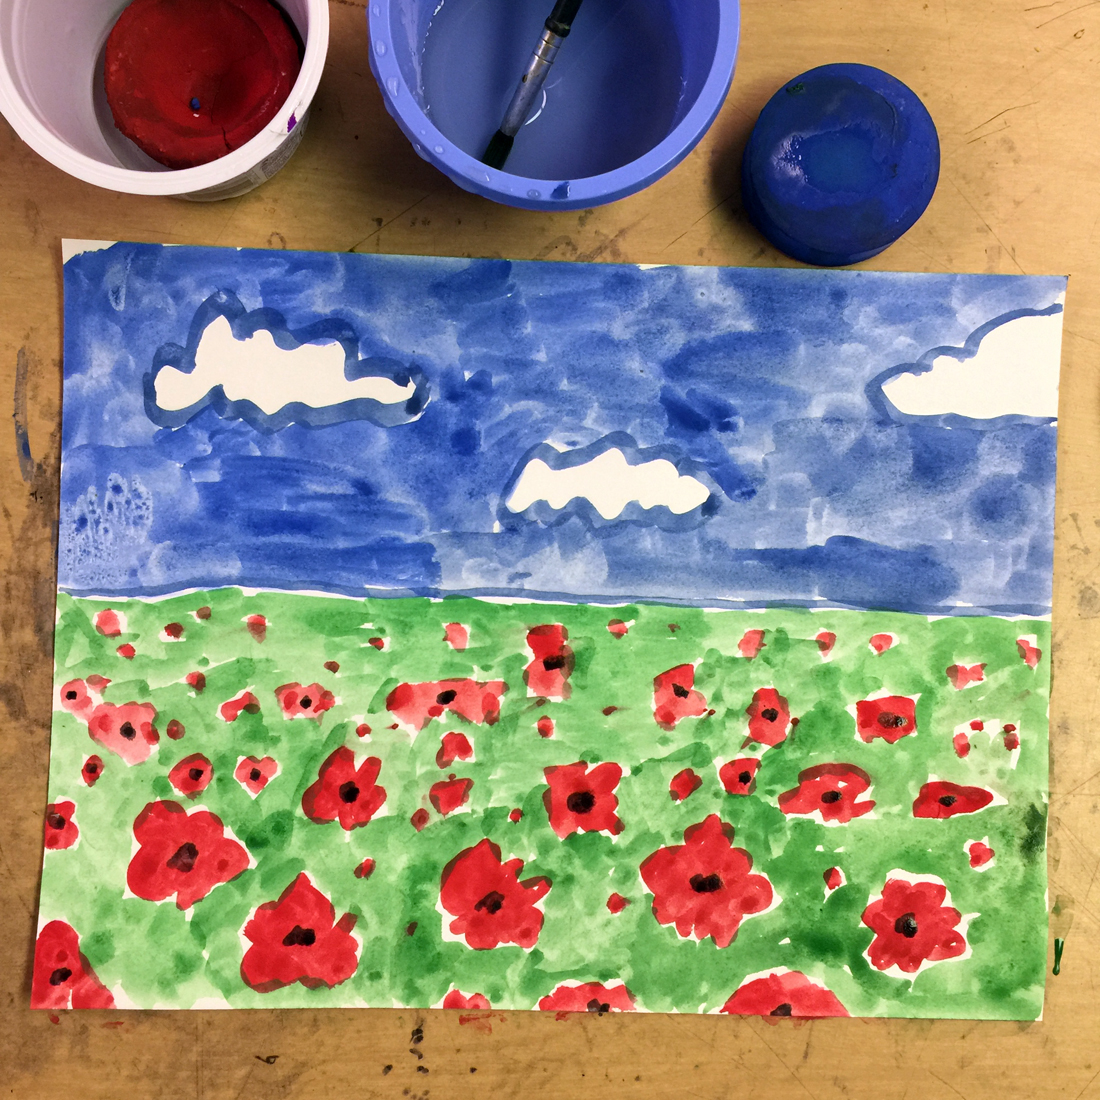 Veterans day poppy painting art projects for kids veterans day art projects can make use of the bright red poppy flower which has a long history of association with this special day mightylinksfo